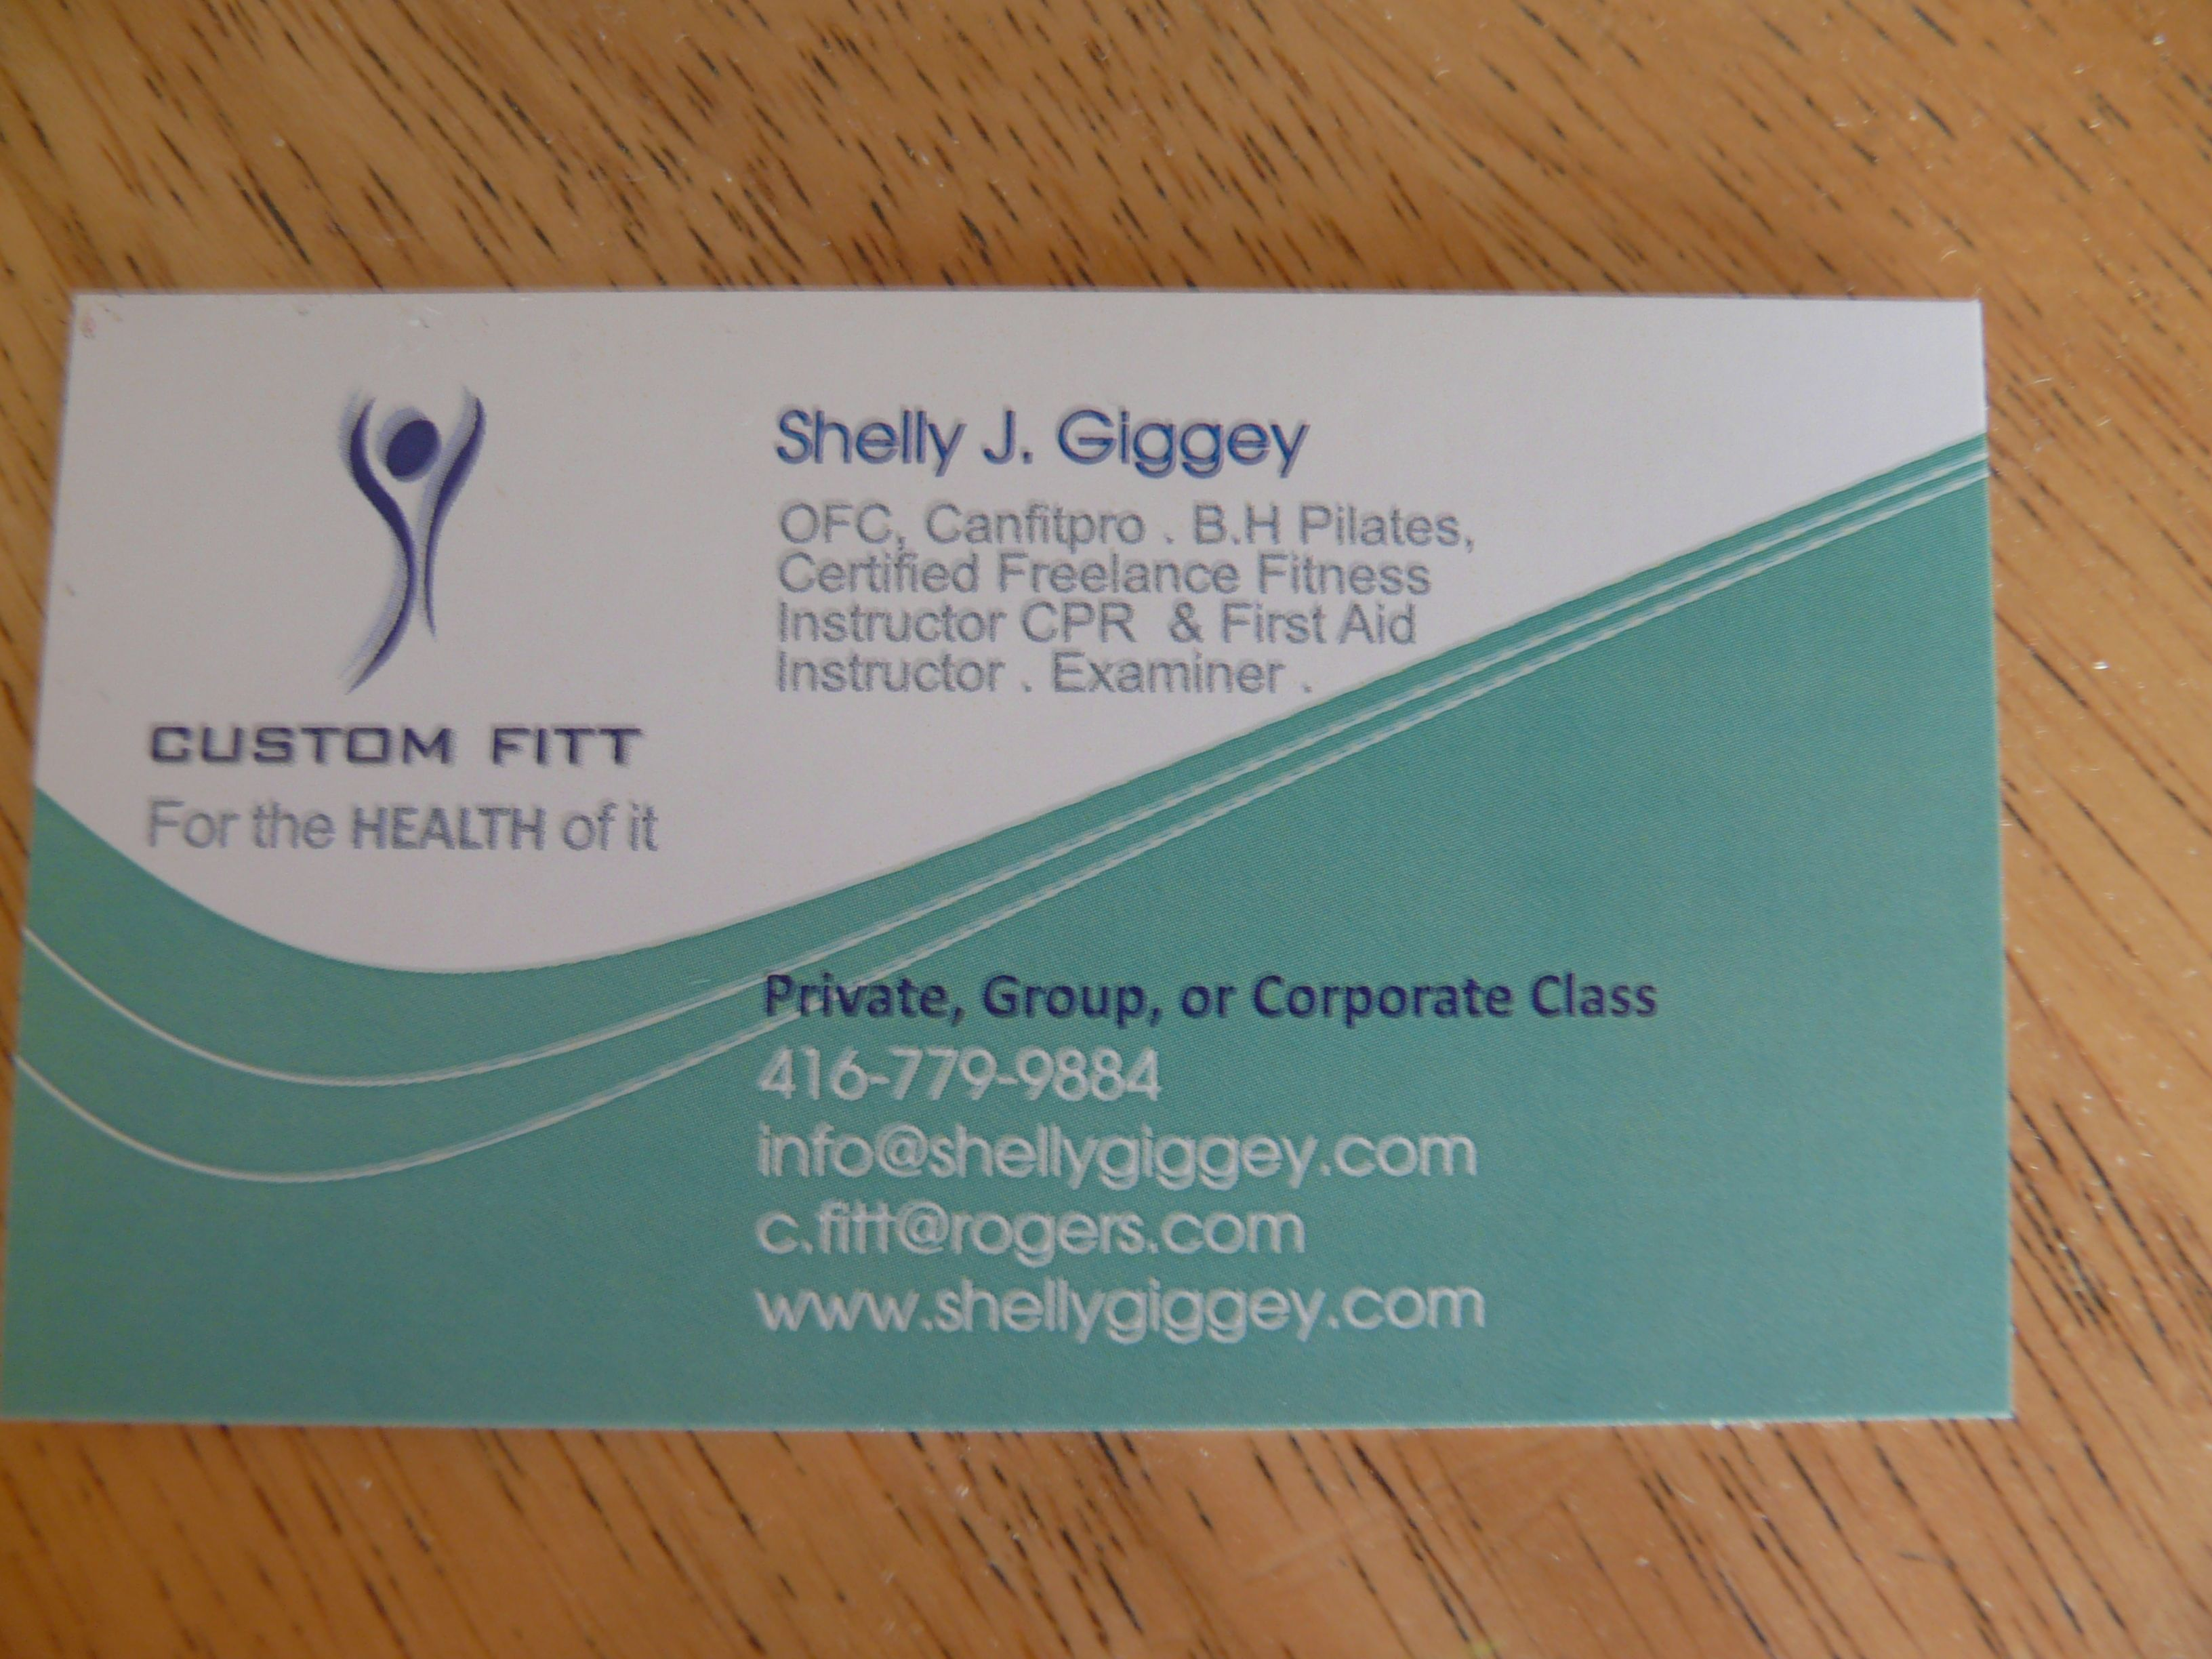 Shelly Giggey Toronto Fitness Professional Shelly Giggey